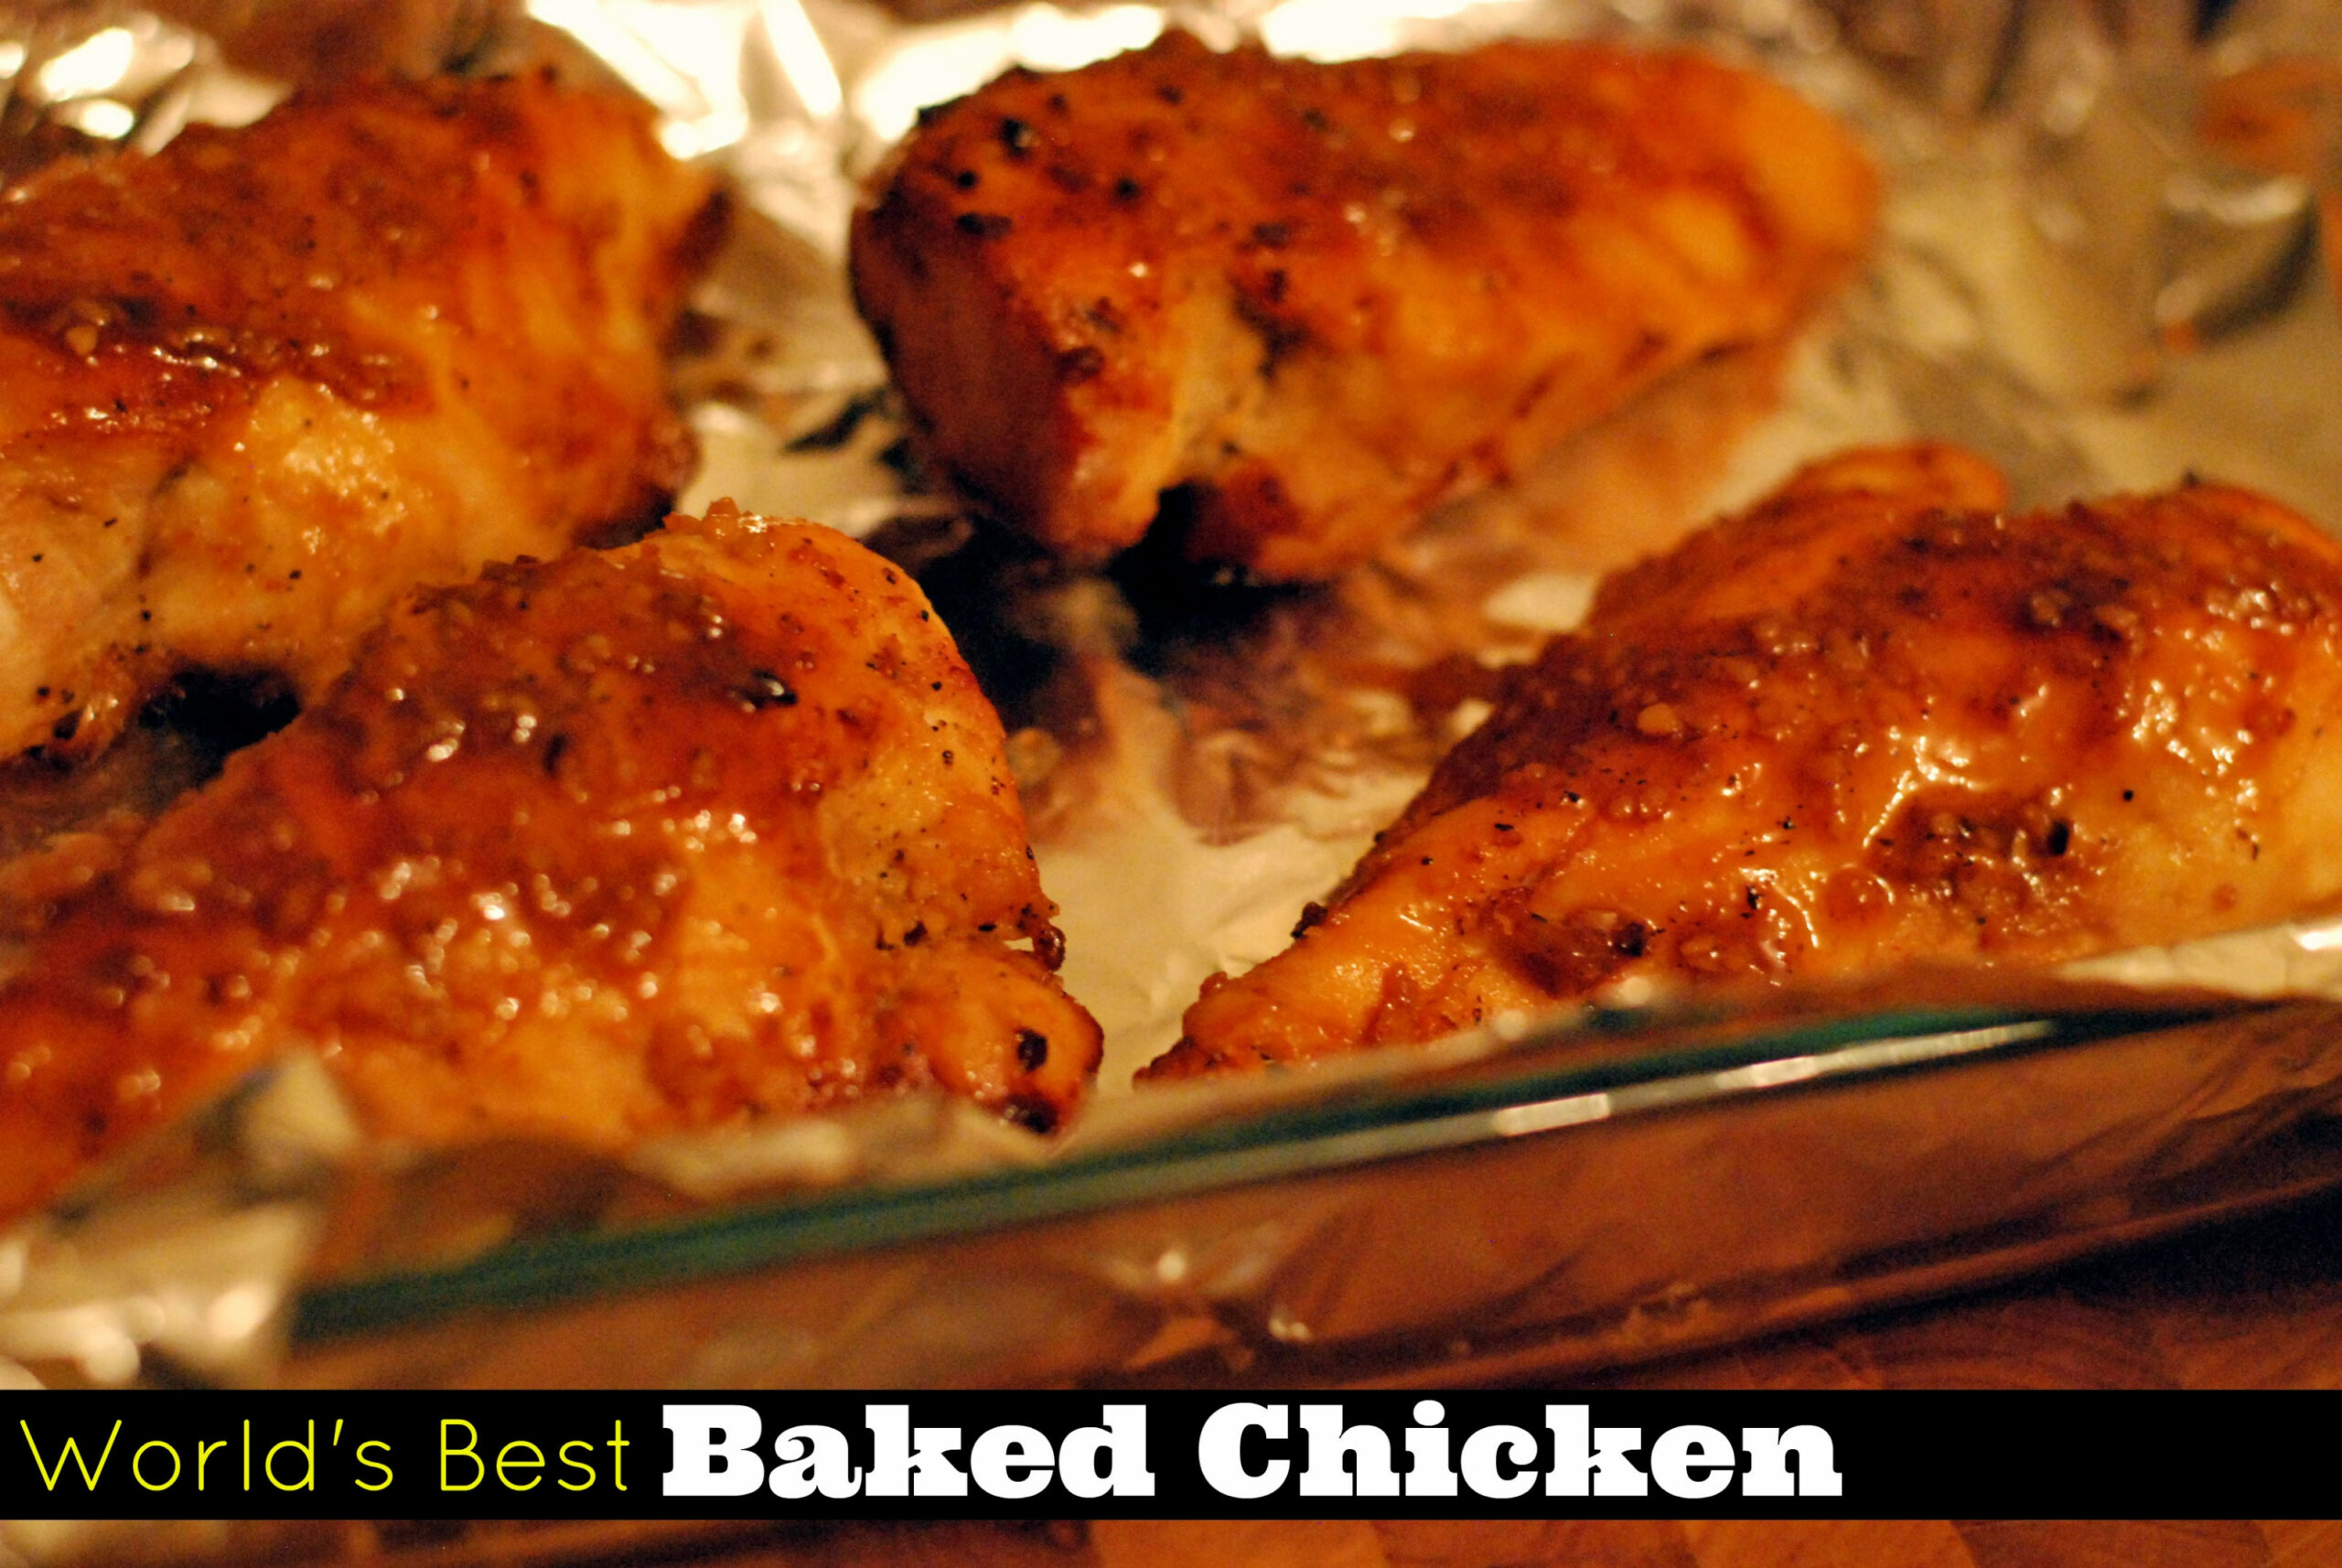 The World's Best Baked Chicken - recipes on baked chicken